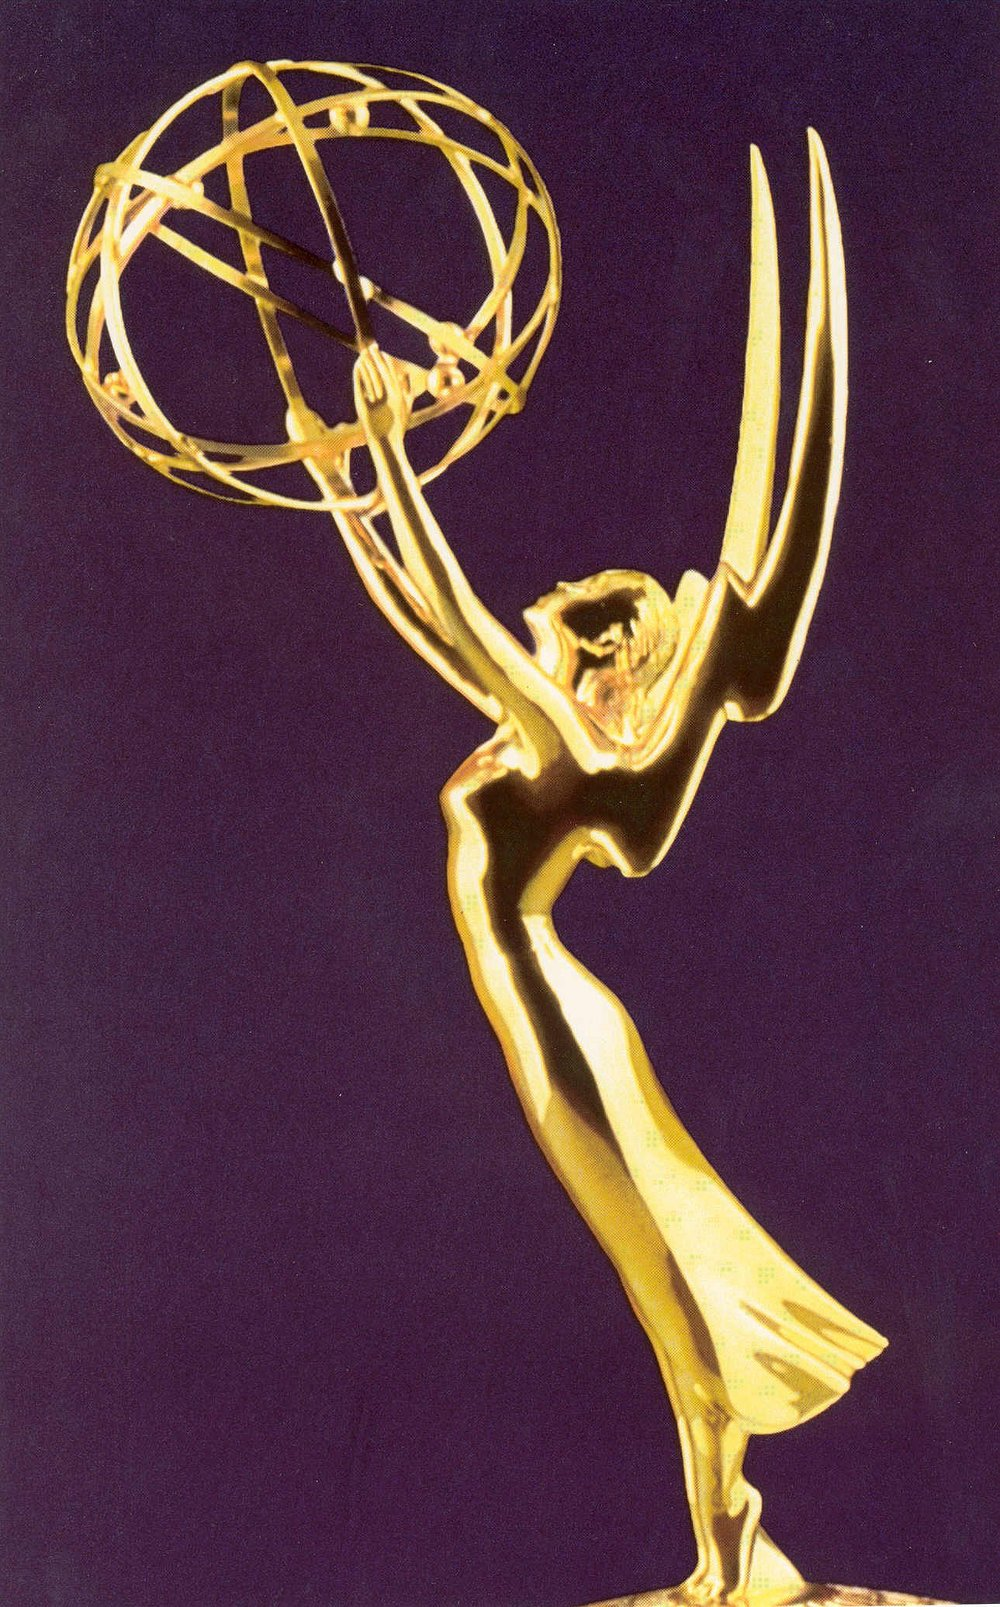 Several Jewish winners were honored at the 2015 Emmy Awards. Credit: Alan Light via Flickr.com.